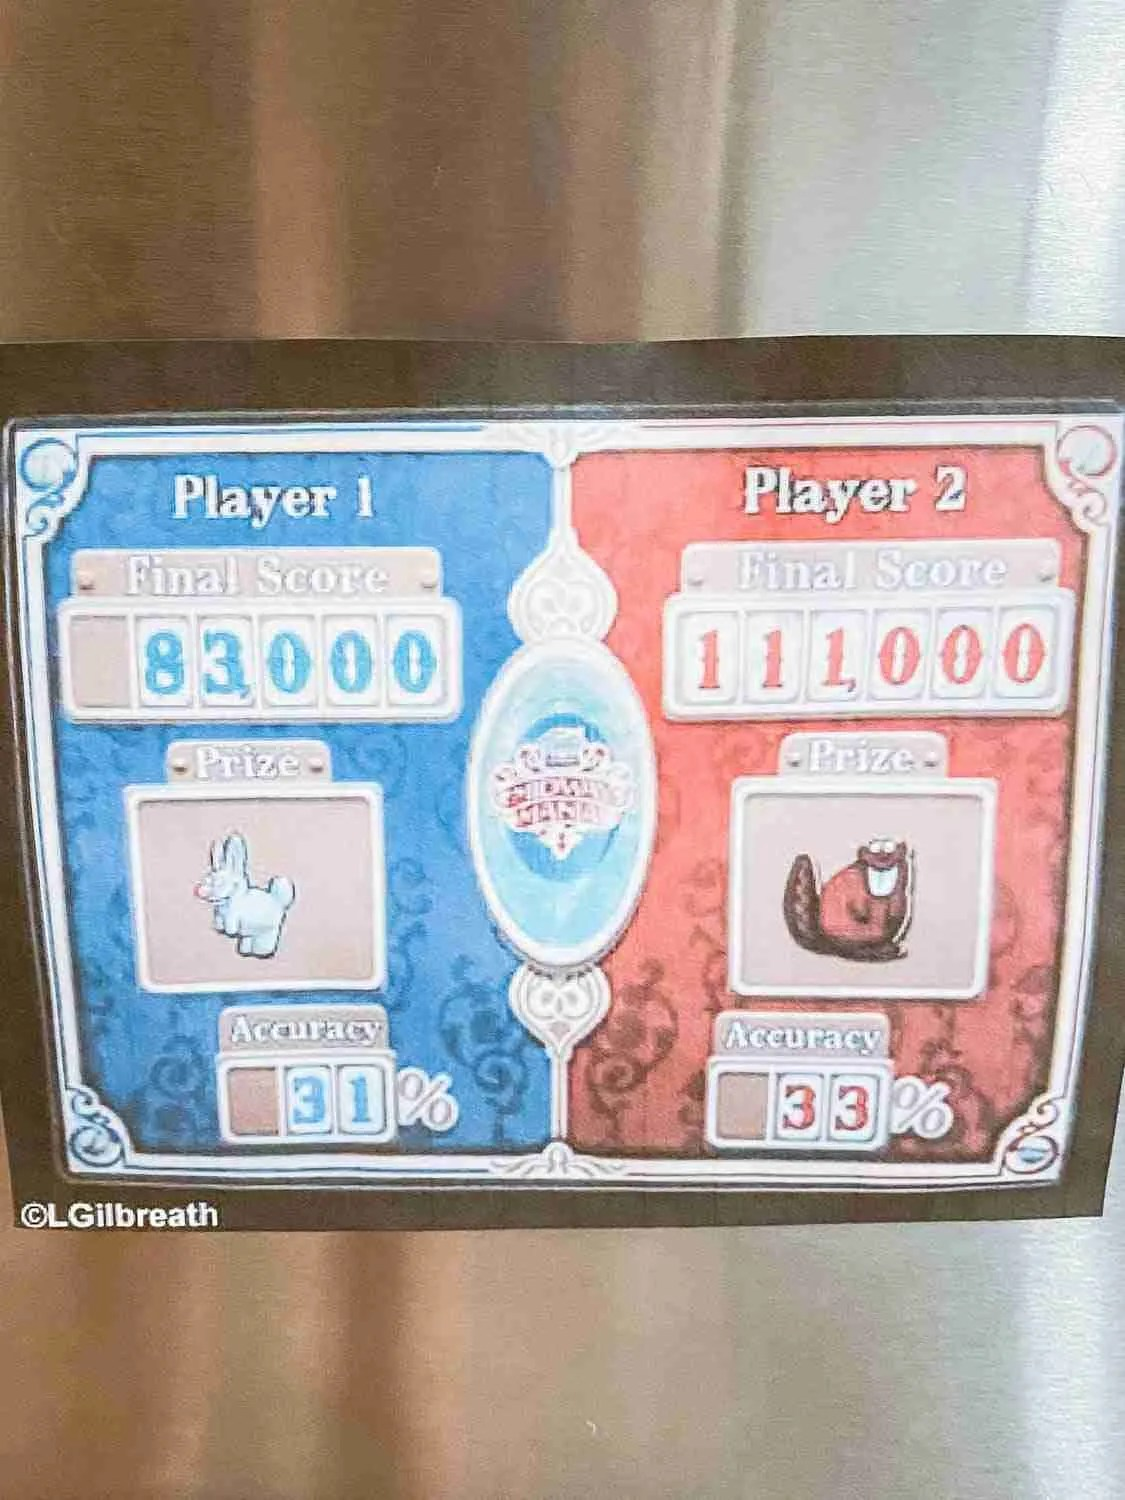 Points printout on fridge door for Midway Mania score for Disneyland at home